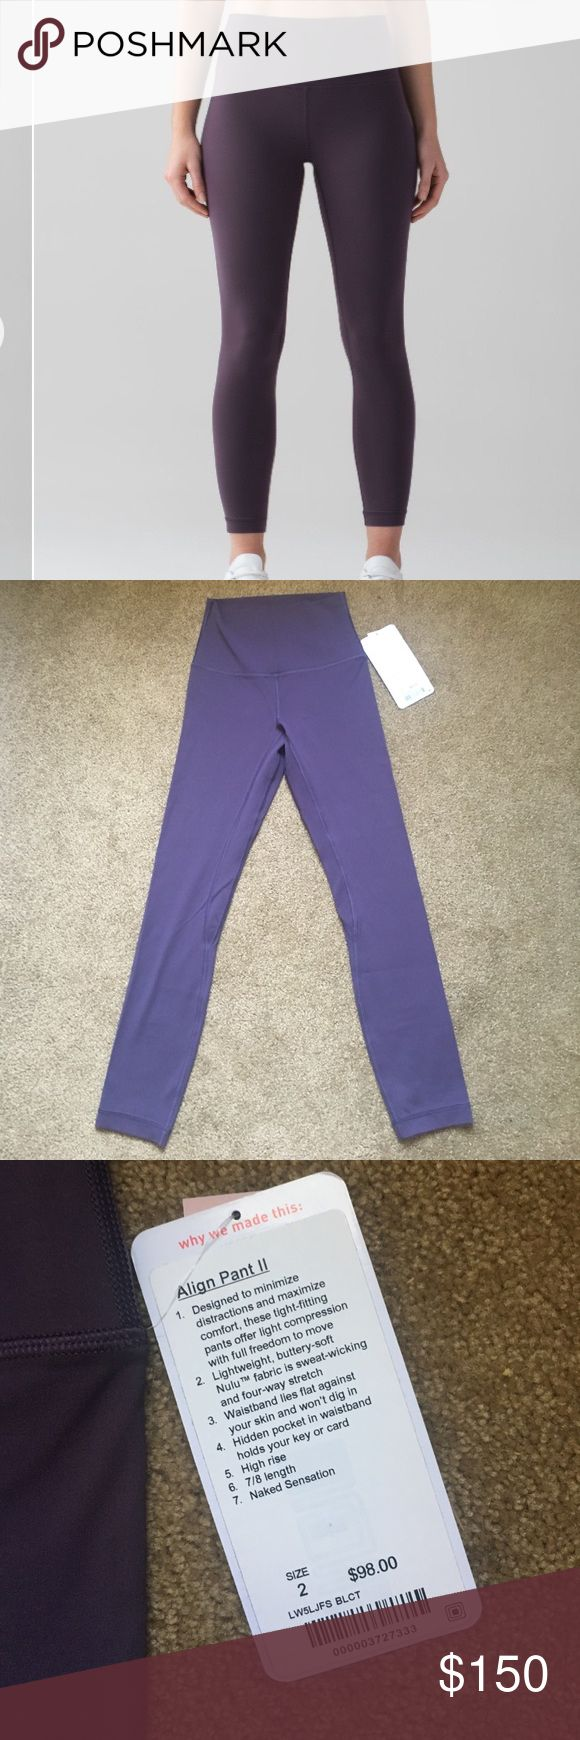 Lululemon Align Pant II Black Currant 2 NWT Sold out. Nulu fabric, super soft and stretchy. Size 2, which is an XXS. Stock photo shows truest color, it's a very grey purple. No trades and no transactions outside of Posh. Price is firm! I priced these so that after Posh takes their 20%, I get back exactly what I paid w/ sales tax. lululemon athletica Pants Leggings